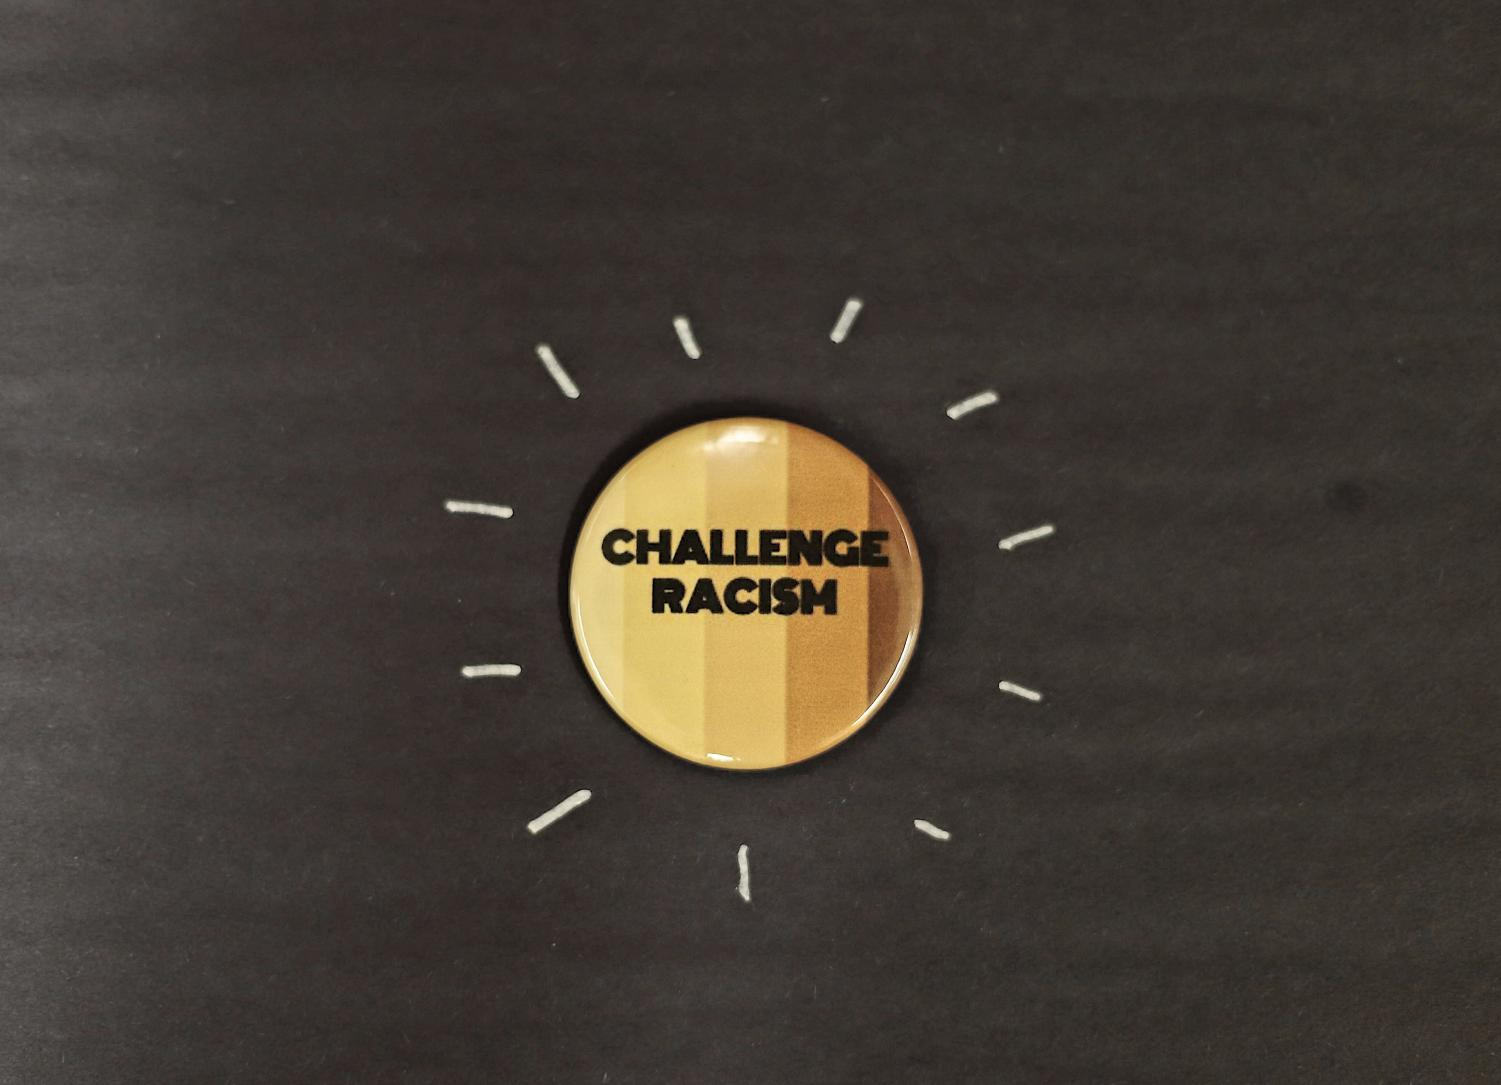 A student-created pin that encourages students to challenge racism.